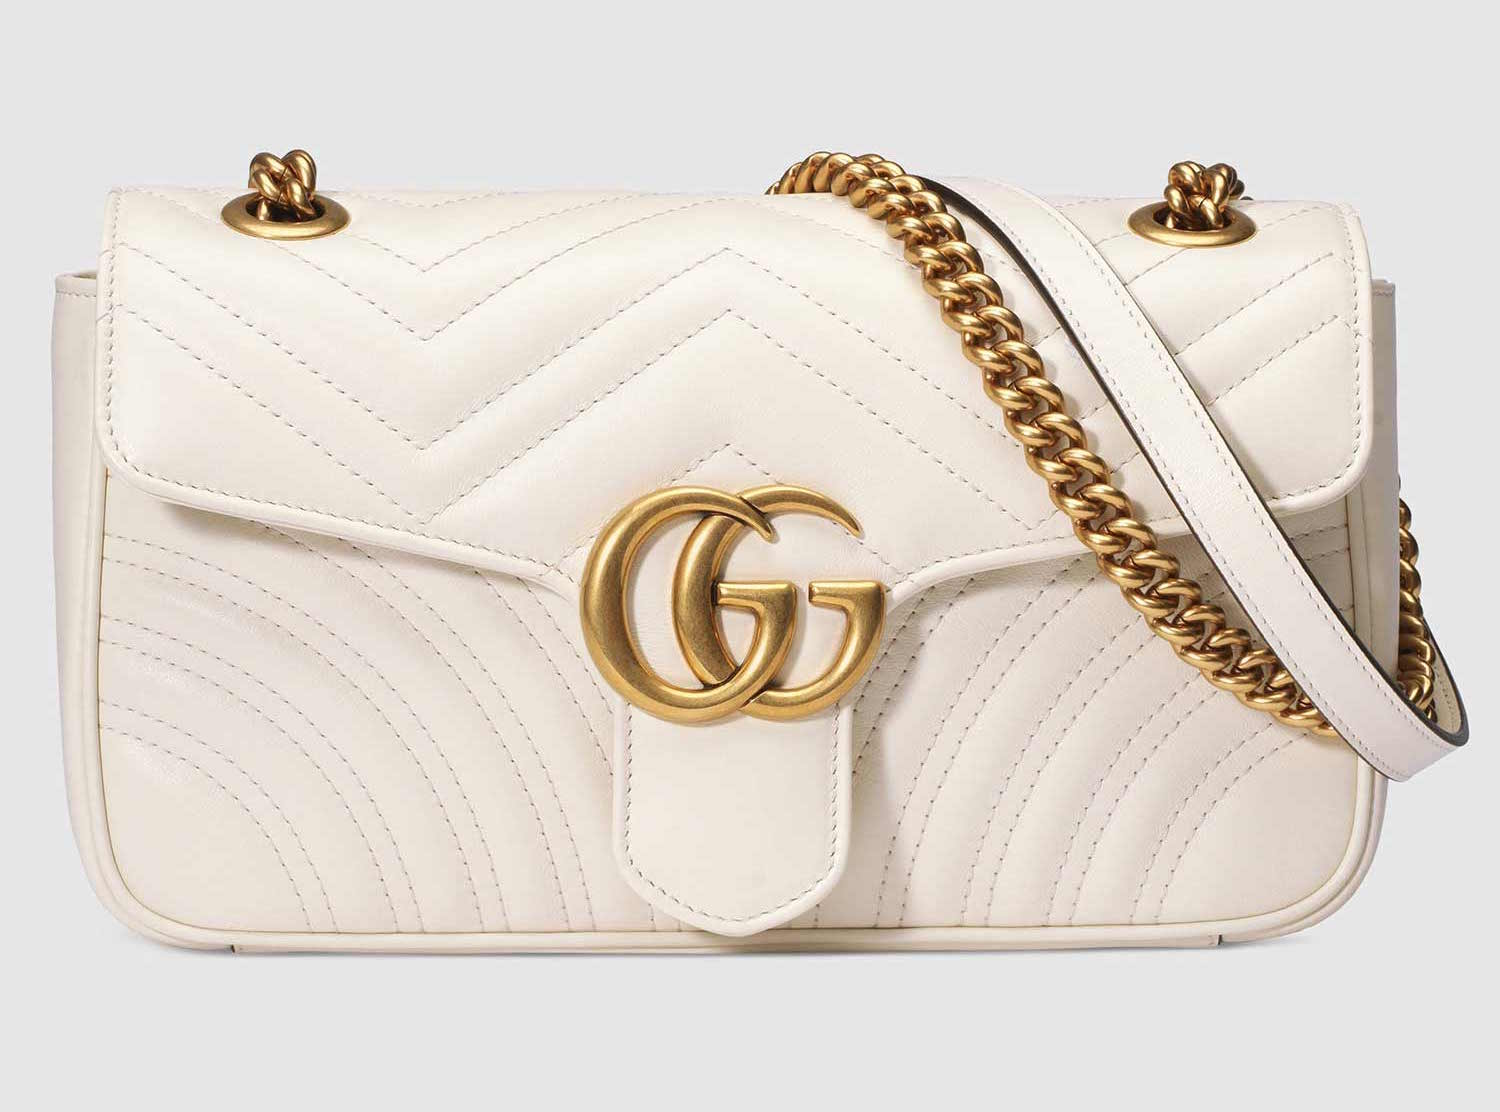 b947beda4d9da 12 Must Have Gucci Bags For 2019 | Raindrops of Sapphire